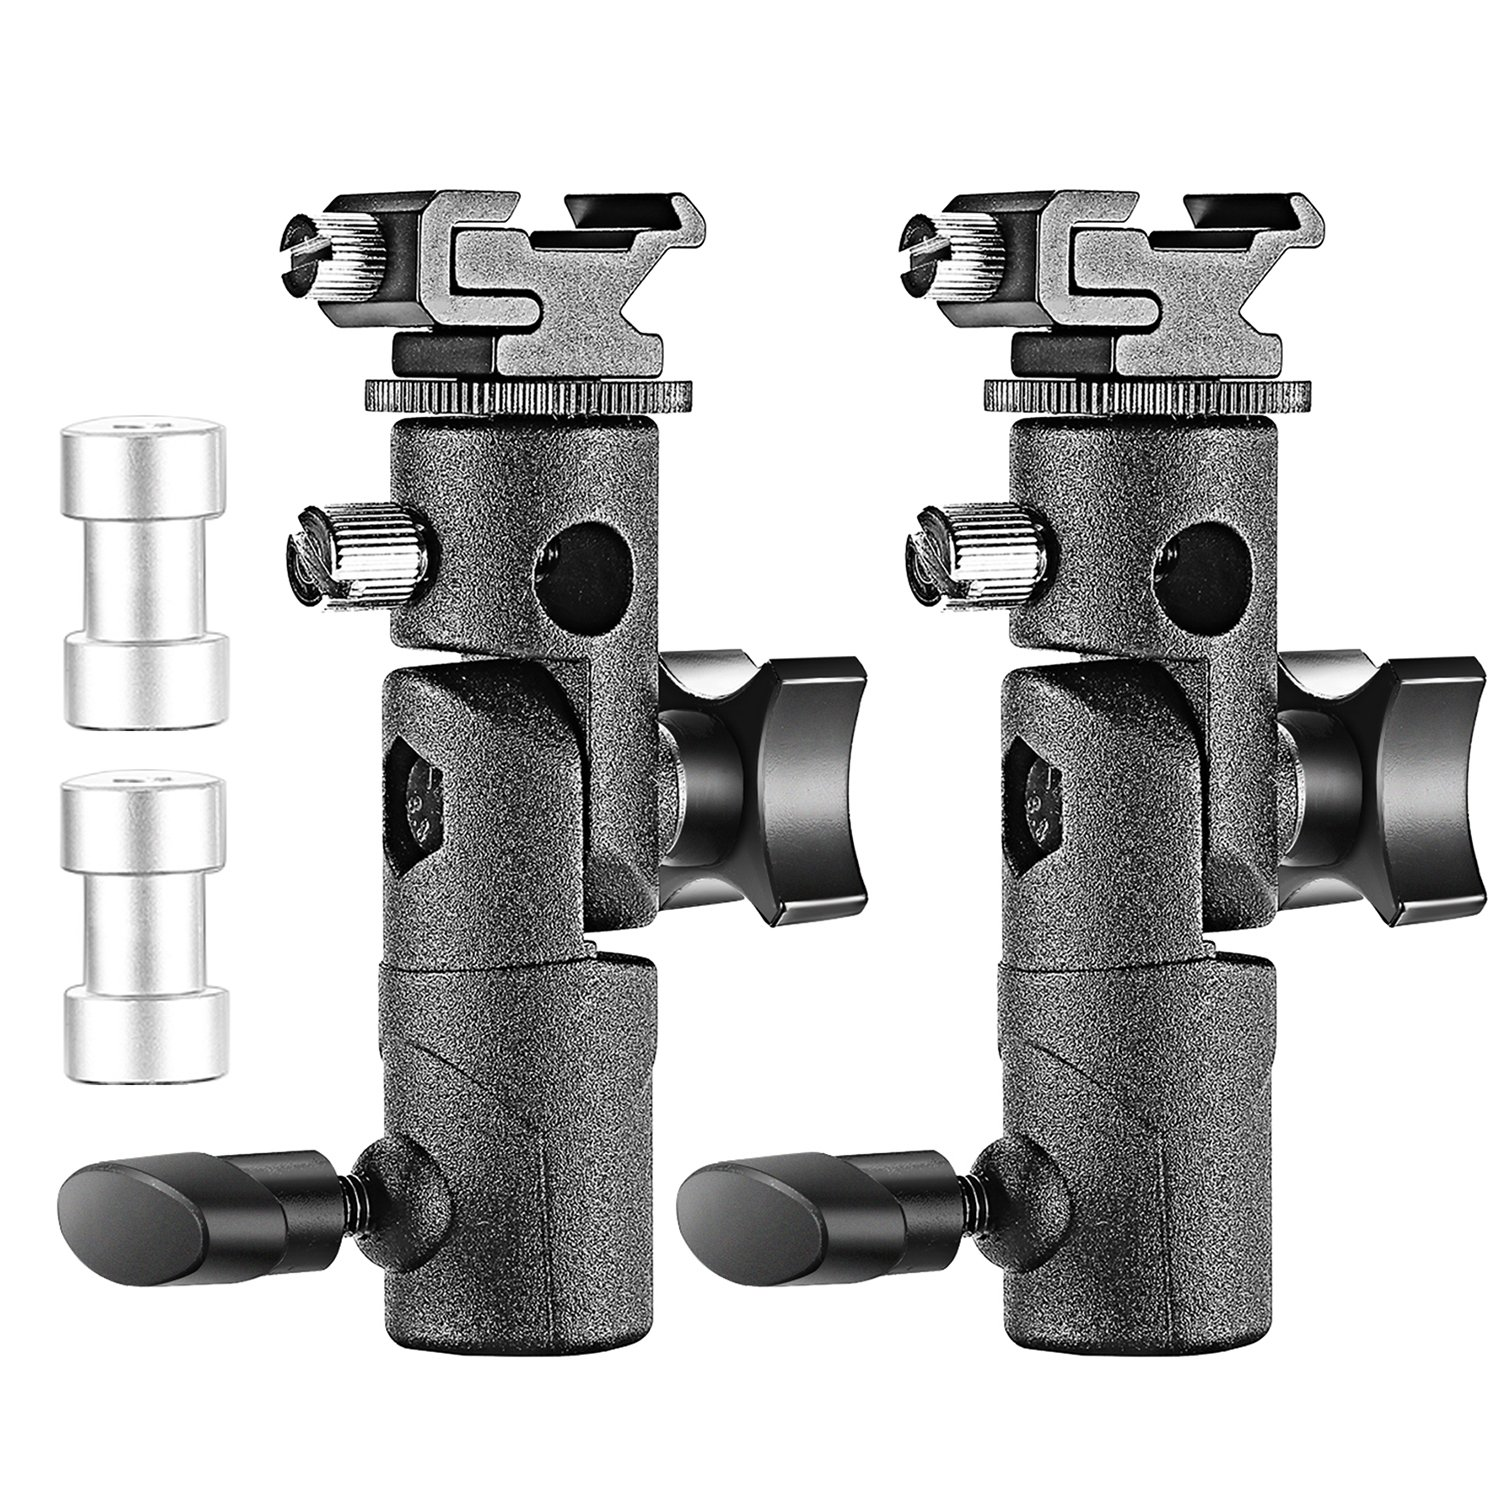 Neewer Professional Universal E Type Camera Flash Speedlite Mount Swivel Light Stand Bracket with Umbrella Holder for Canon Nikon Pentax Olympus and Other Flashes, Studio Light, LED Light(2 Pack) by Neewer